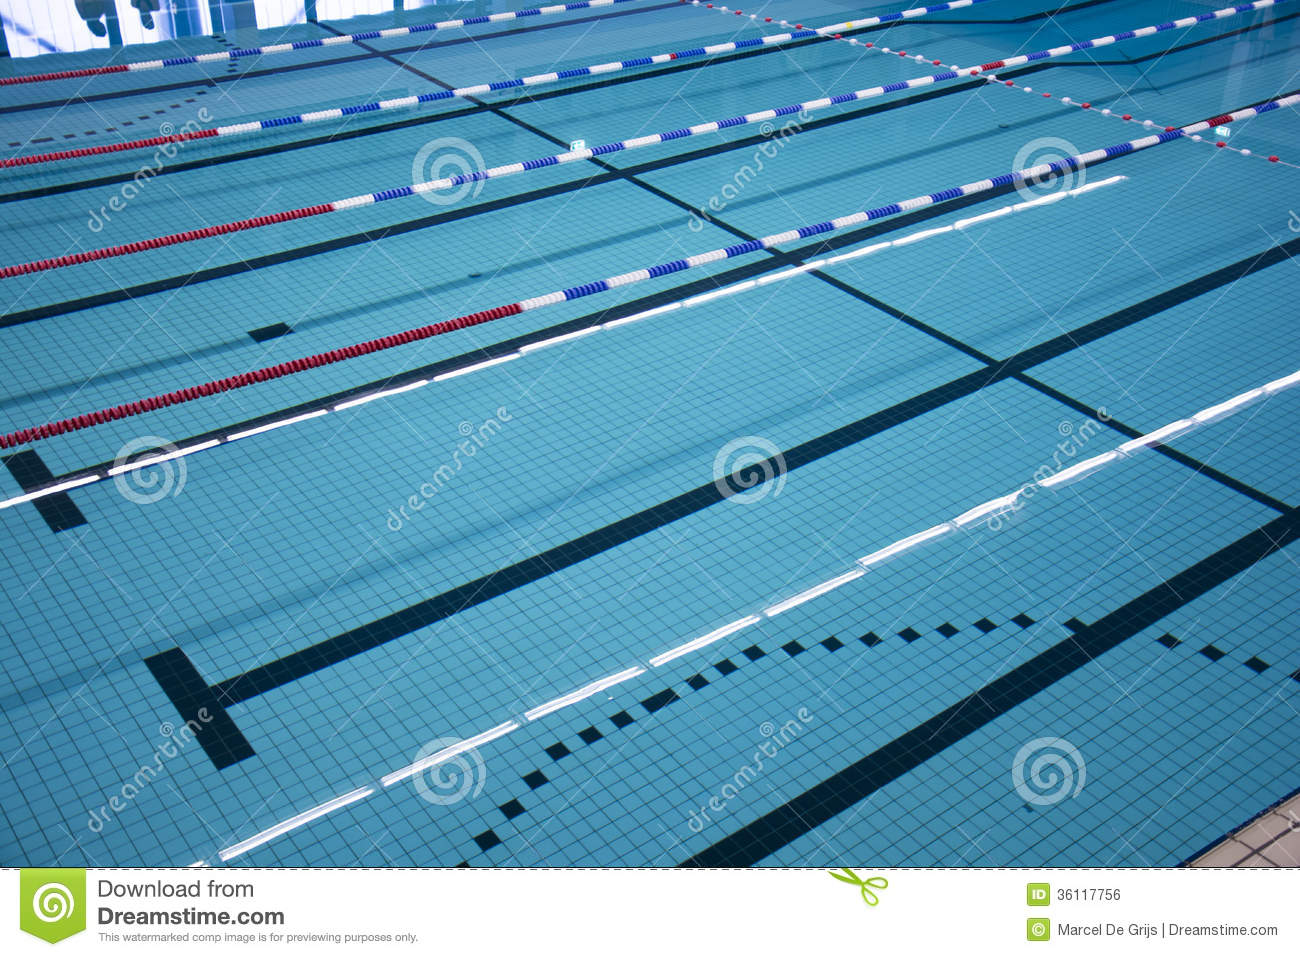 Olympic Swimming Pool Underwater wonderful olympic swimming pool lanes with lane markers throughout